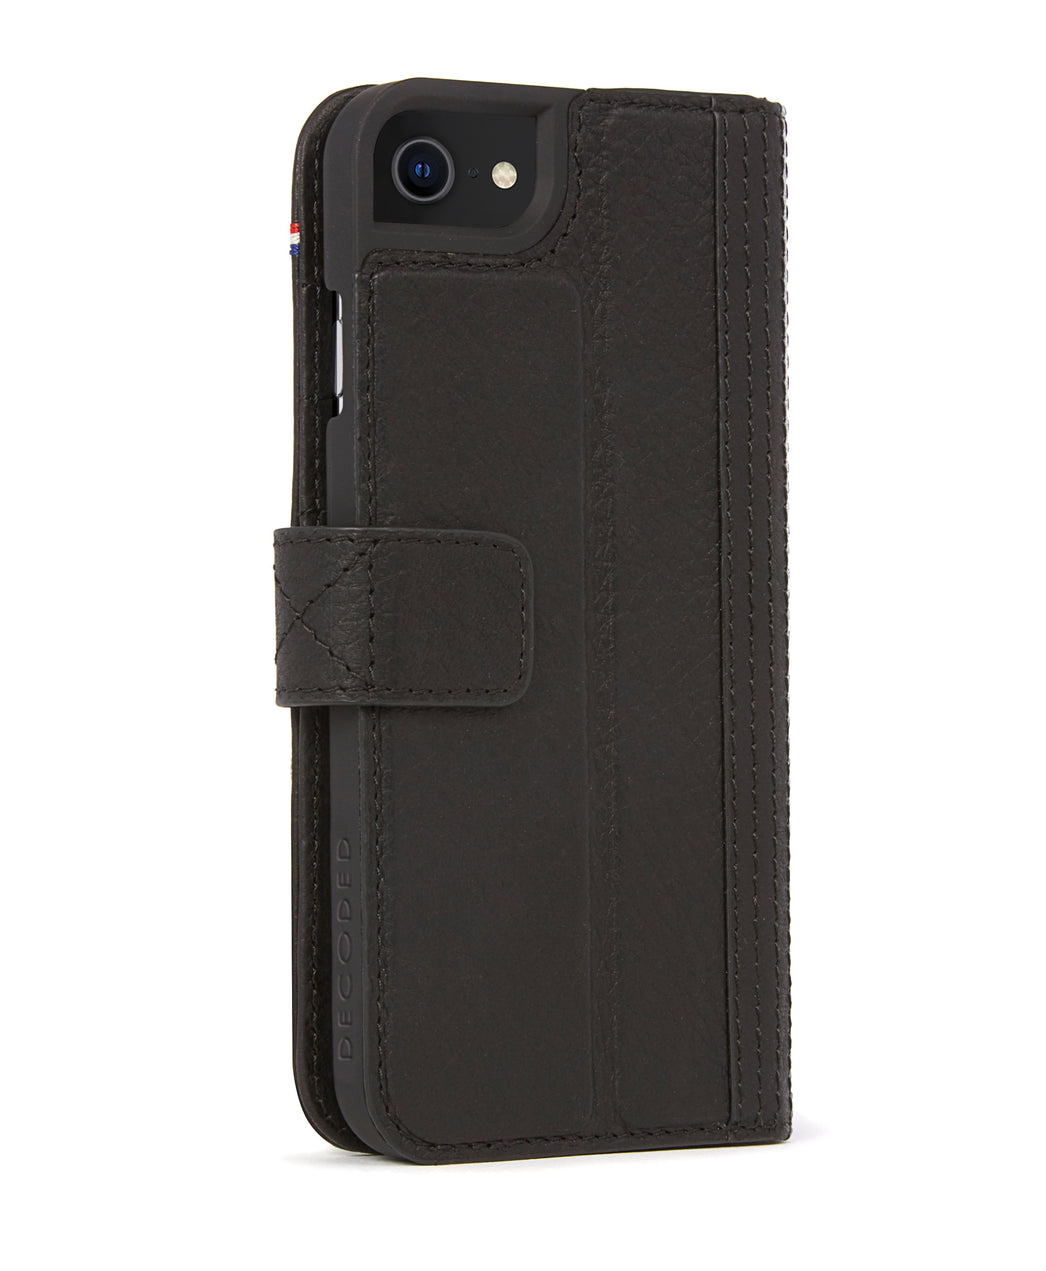 Wallet Case Black - iPhone SE